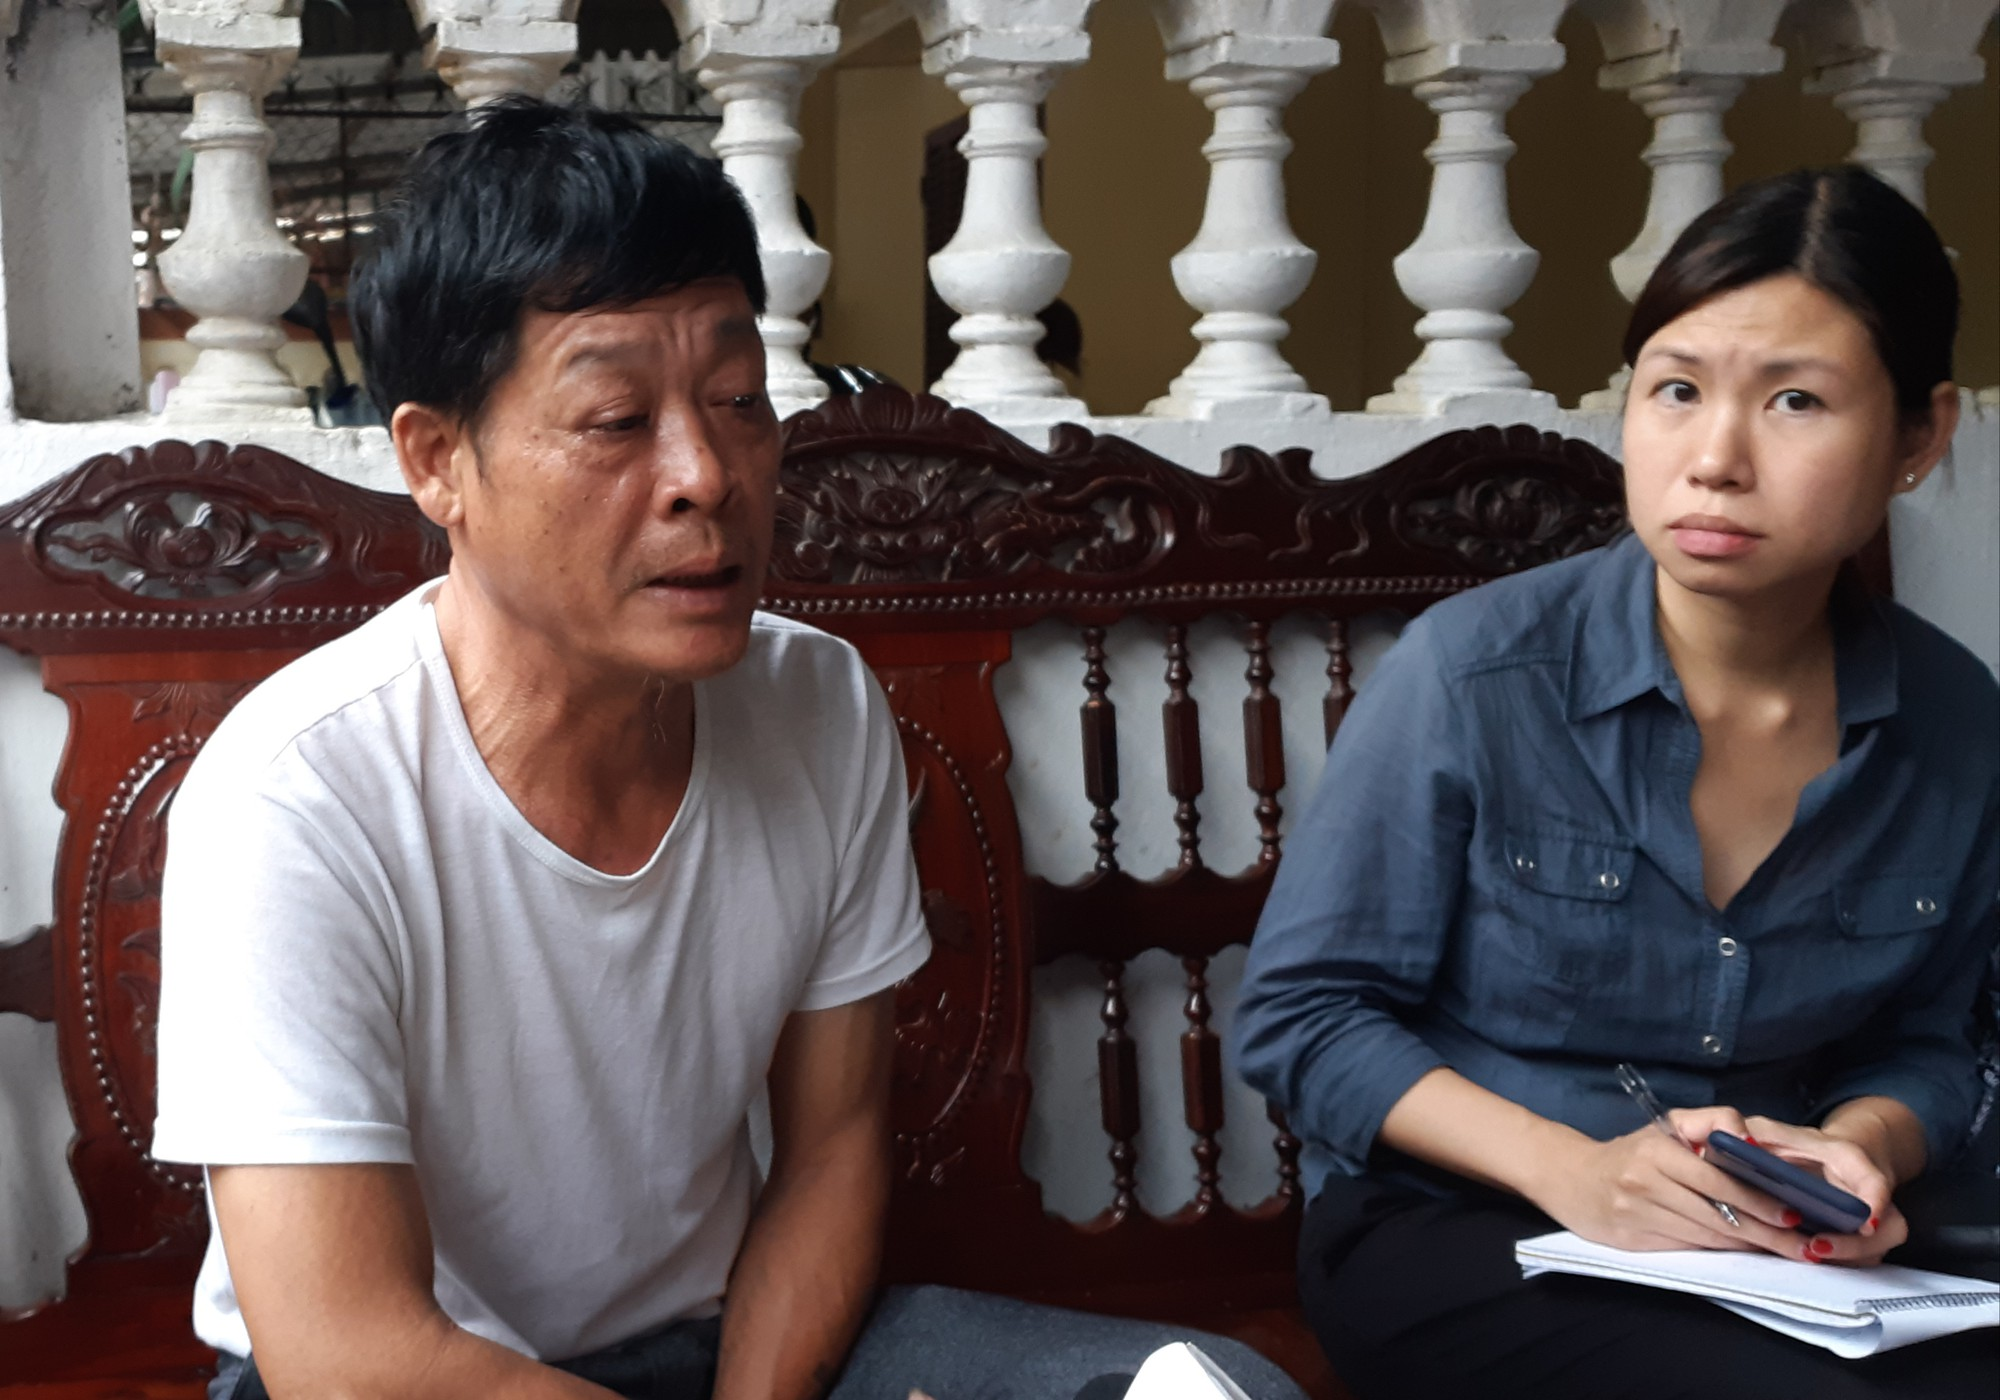 Pham Van Thin (L), father of Pham Thi Tra My, who is suspected to be among 39 victims found dead in a truck in Essex, UK on October 23, 2019, talks with reporters about the details of My's journey from Vietnam to the UK. Photo: Van Dinh / Tuoi Tre